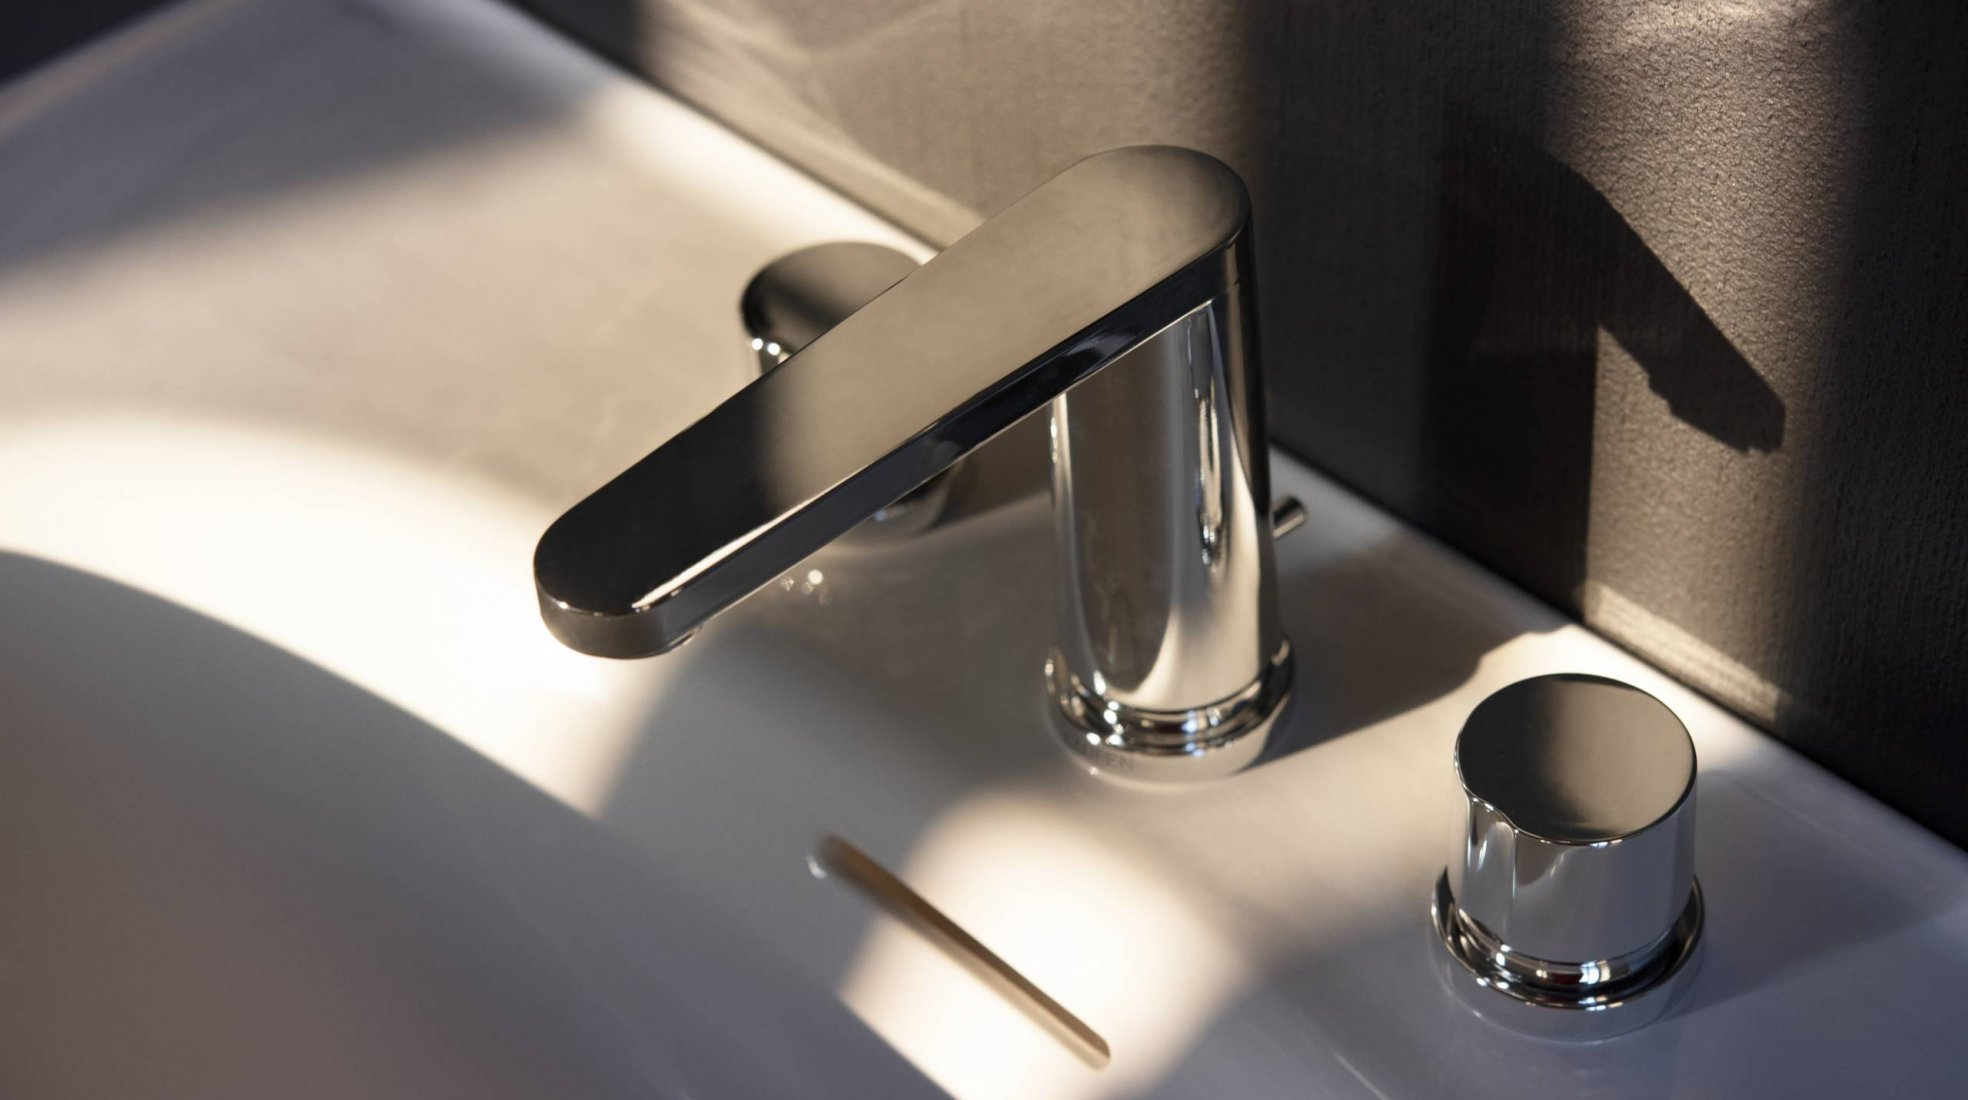 The New Classic faucets by Marcel Wanders